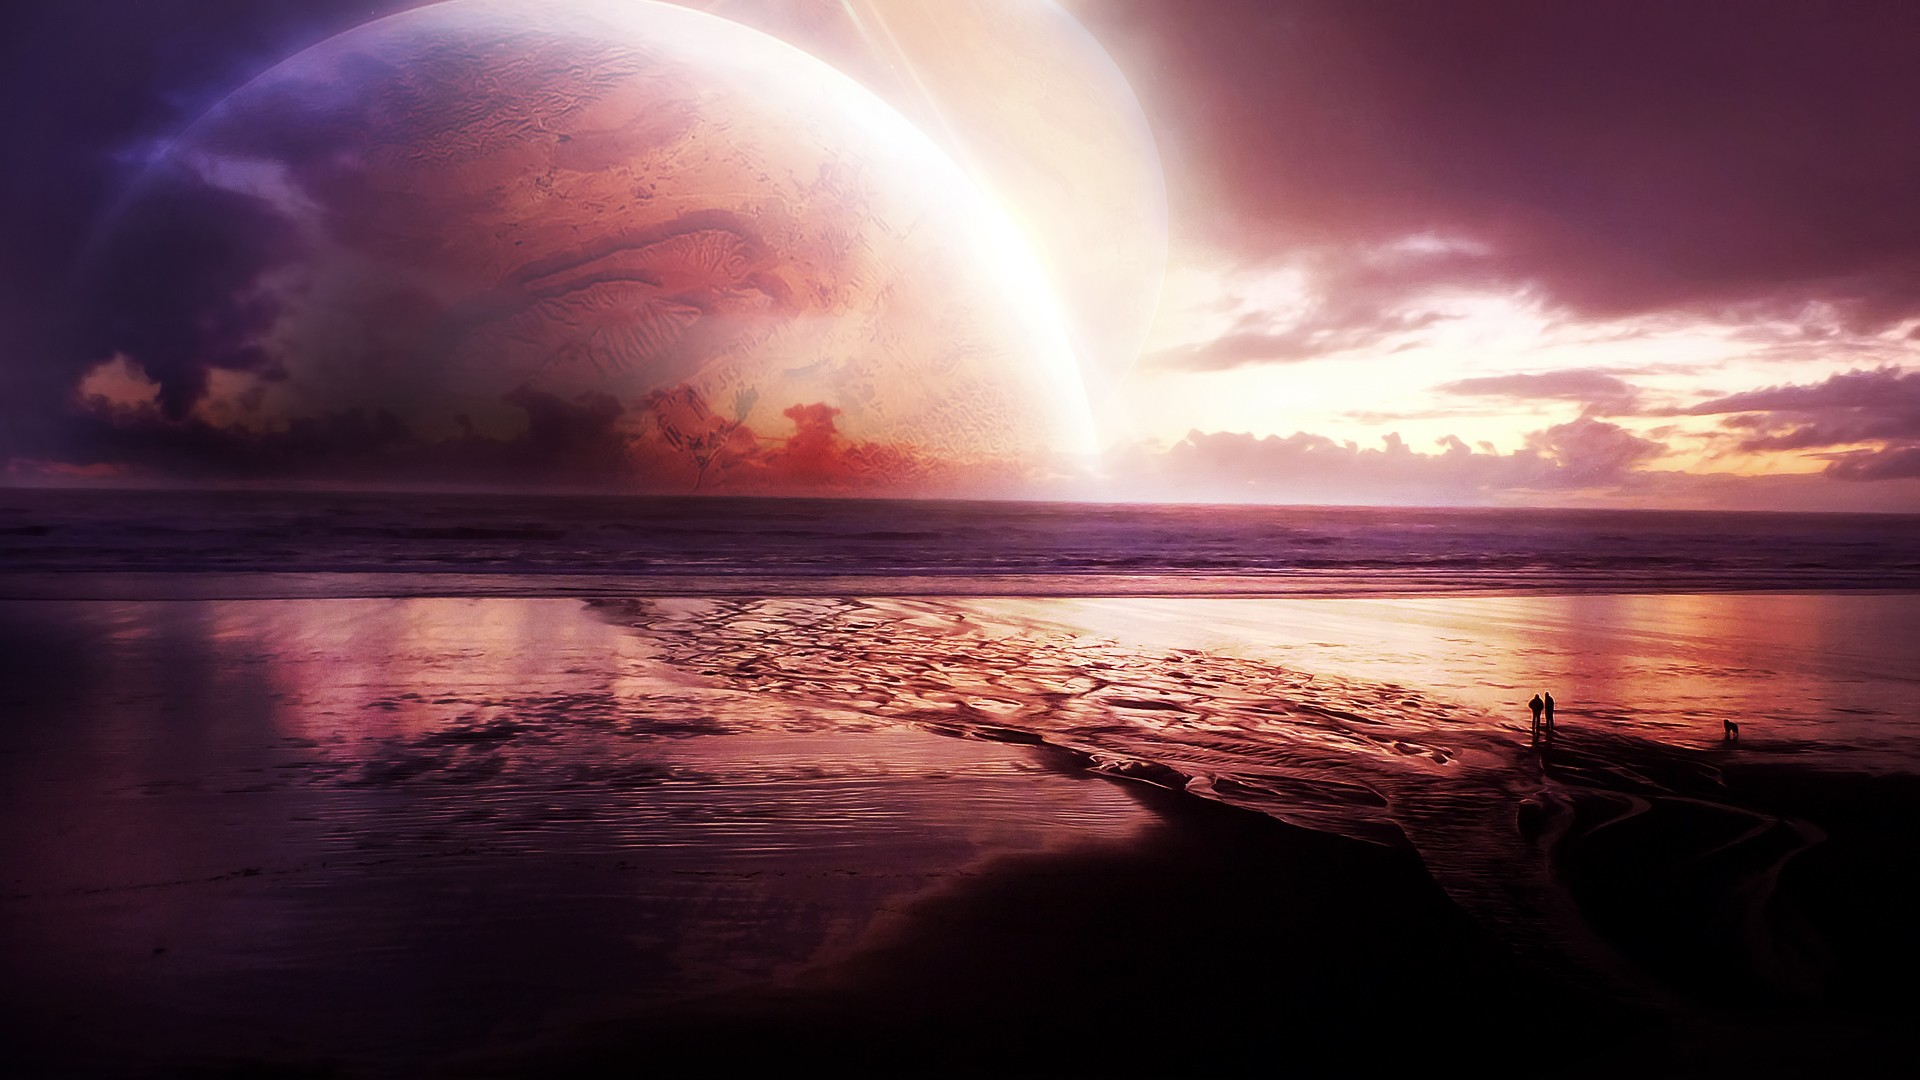 3d Hd Wallpaper For Android Mobile Cosmos Sunset Sea Hd Digital Universe 4k Wallpapers